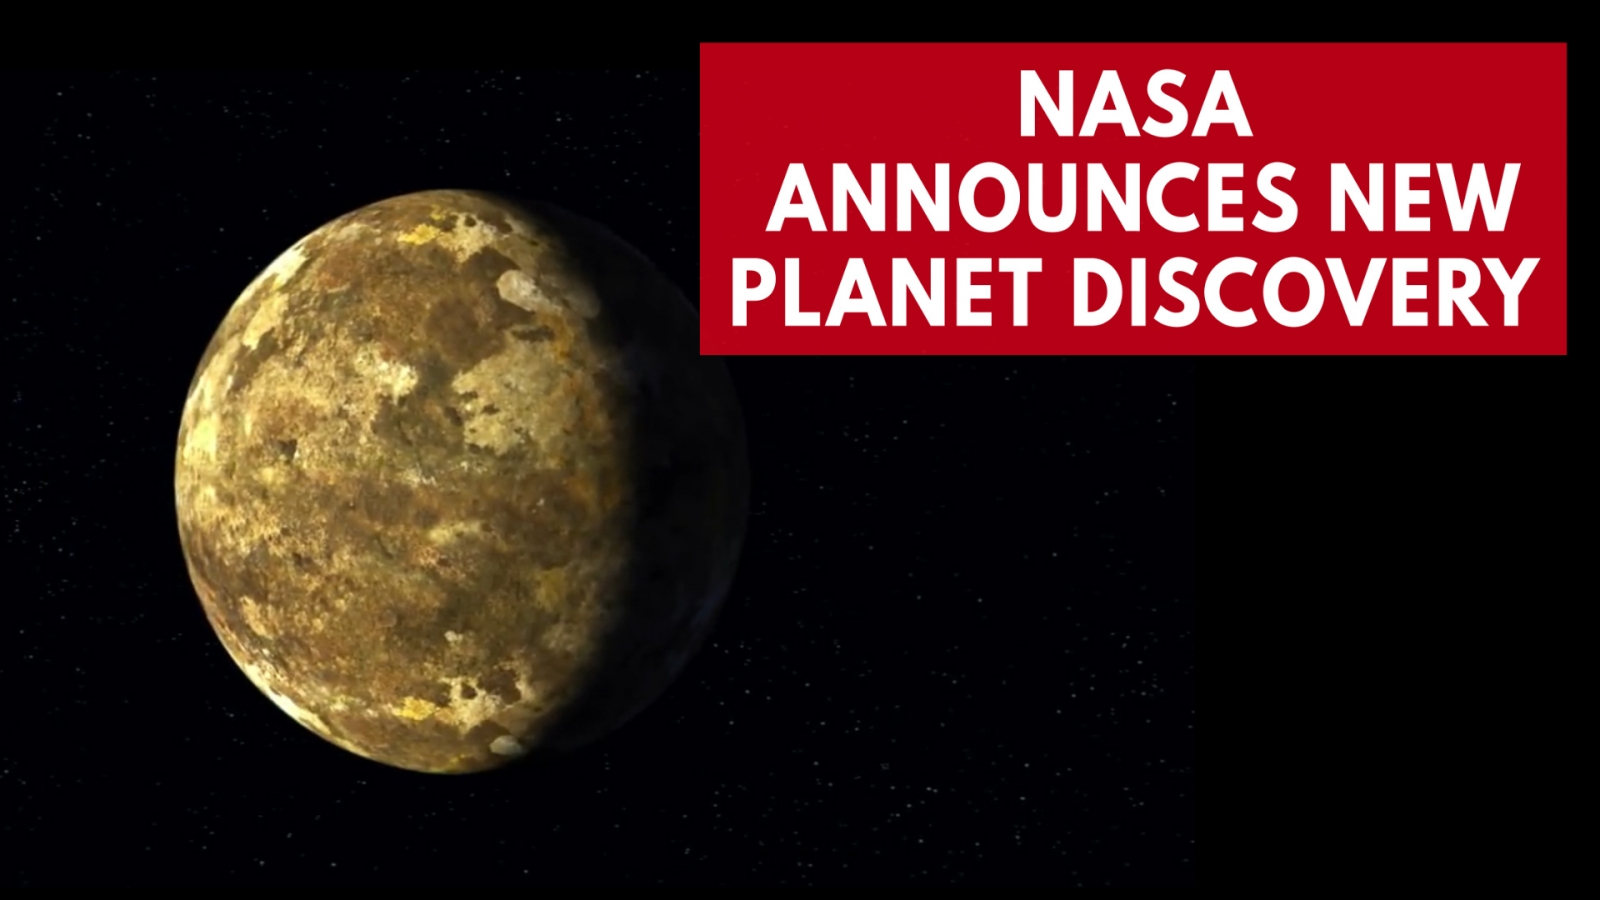 Nearly 100 new exoplanets have been discovered using Nasa's Kepler spacecraft in record haul